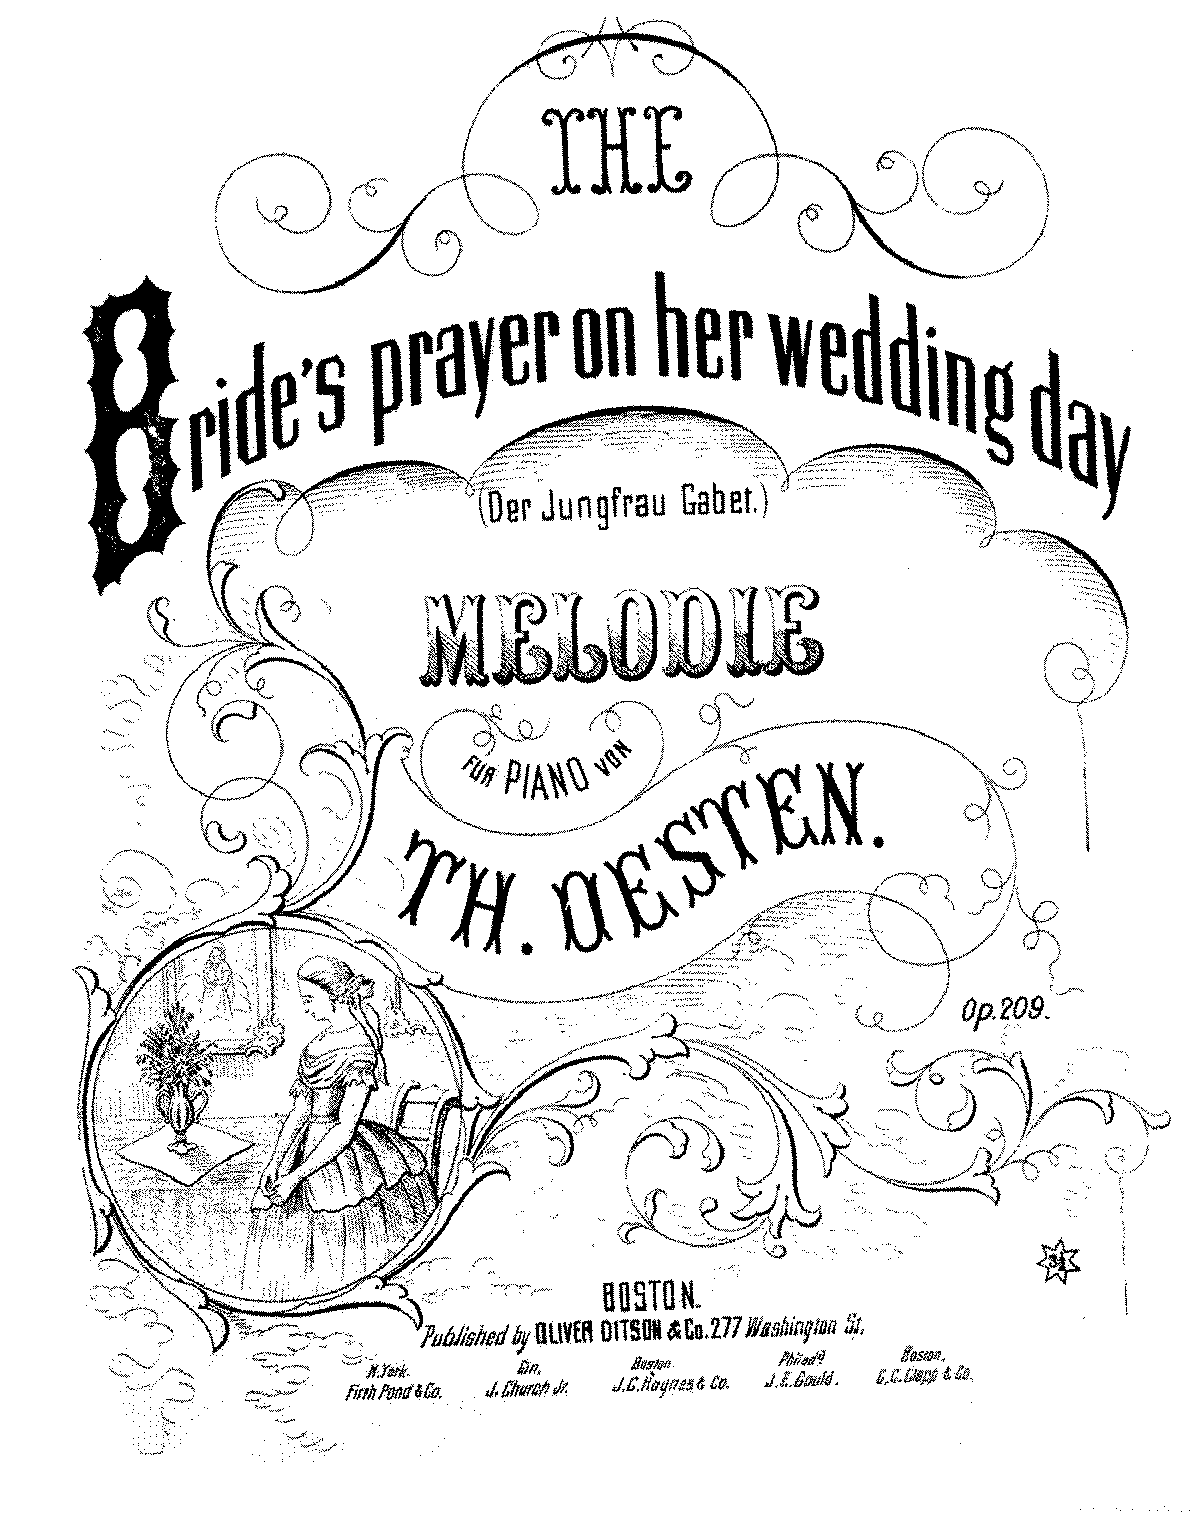 PMLP351779-Oesten - 209 The Bride's Prayer on her Wedding Day - Melodie op 209.PDF